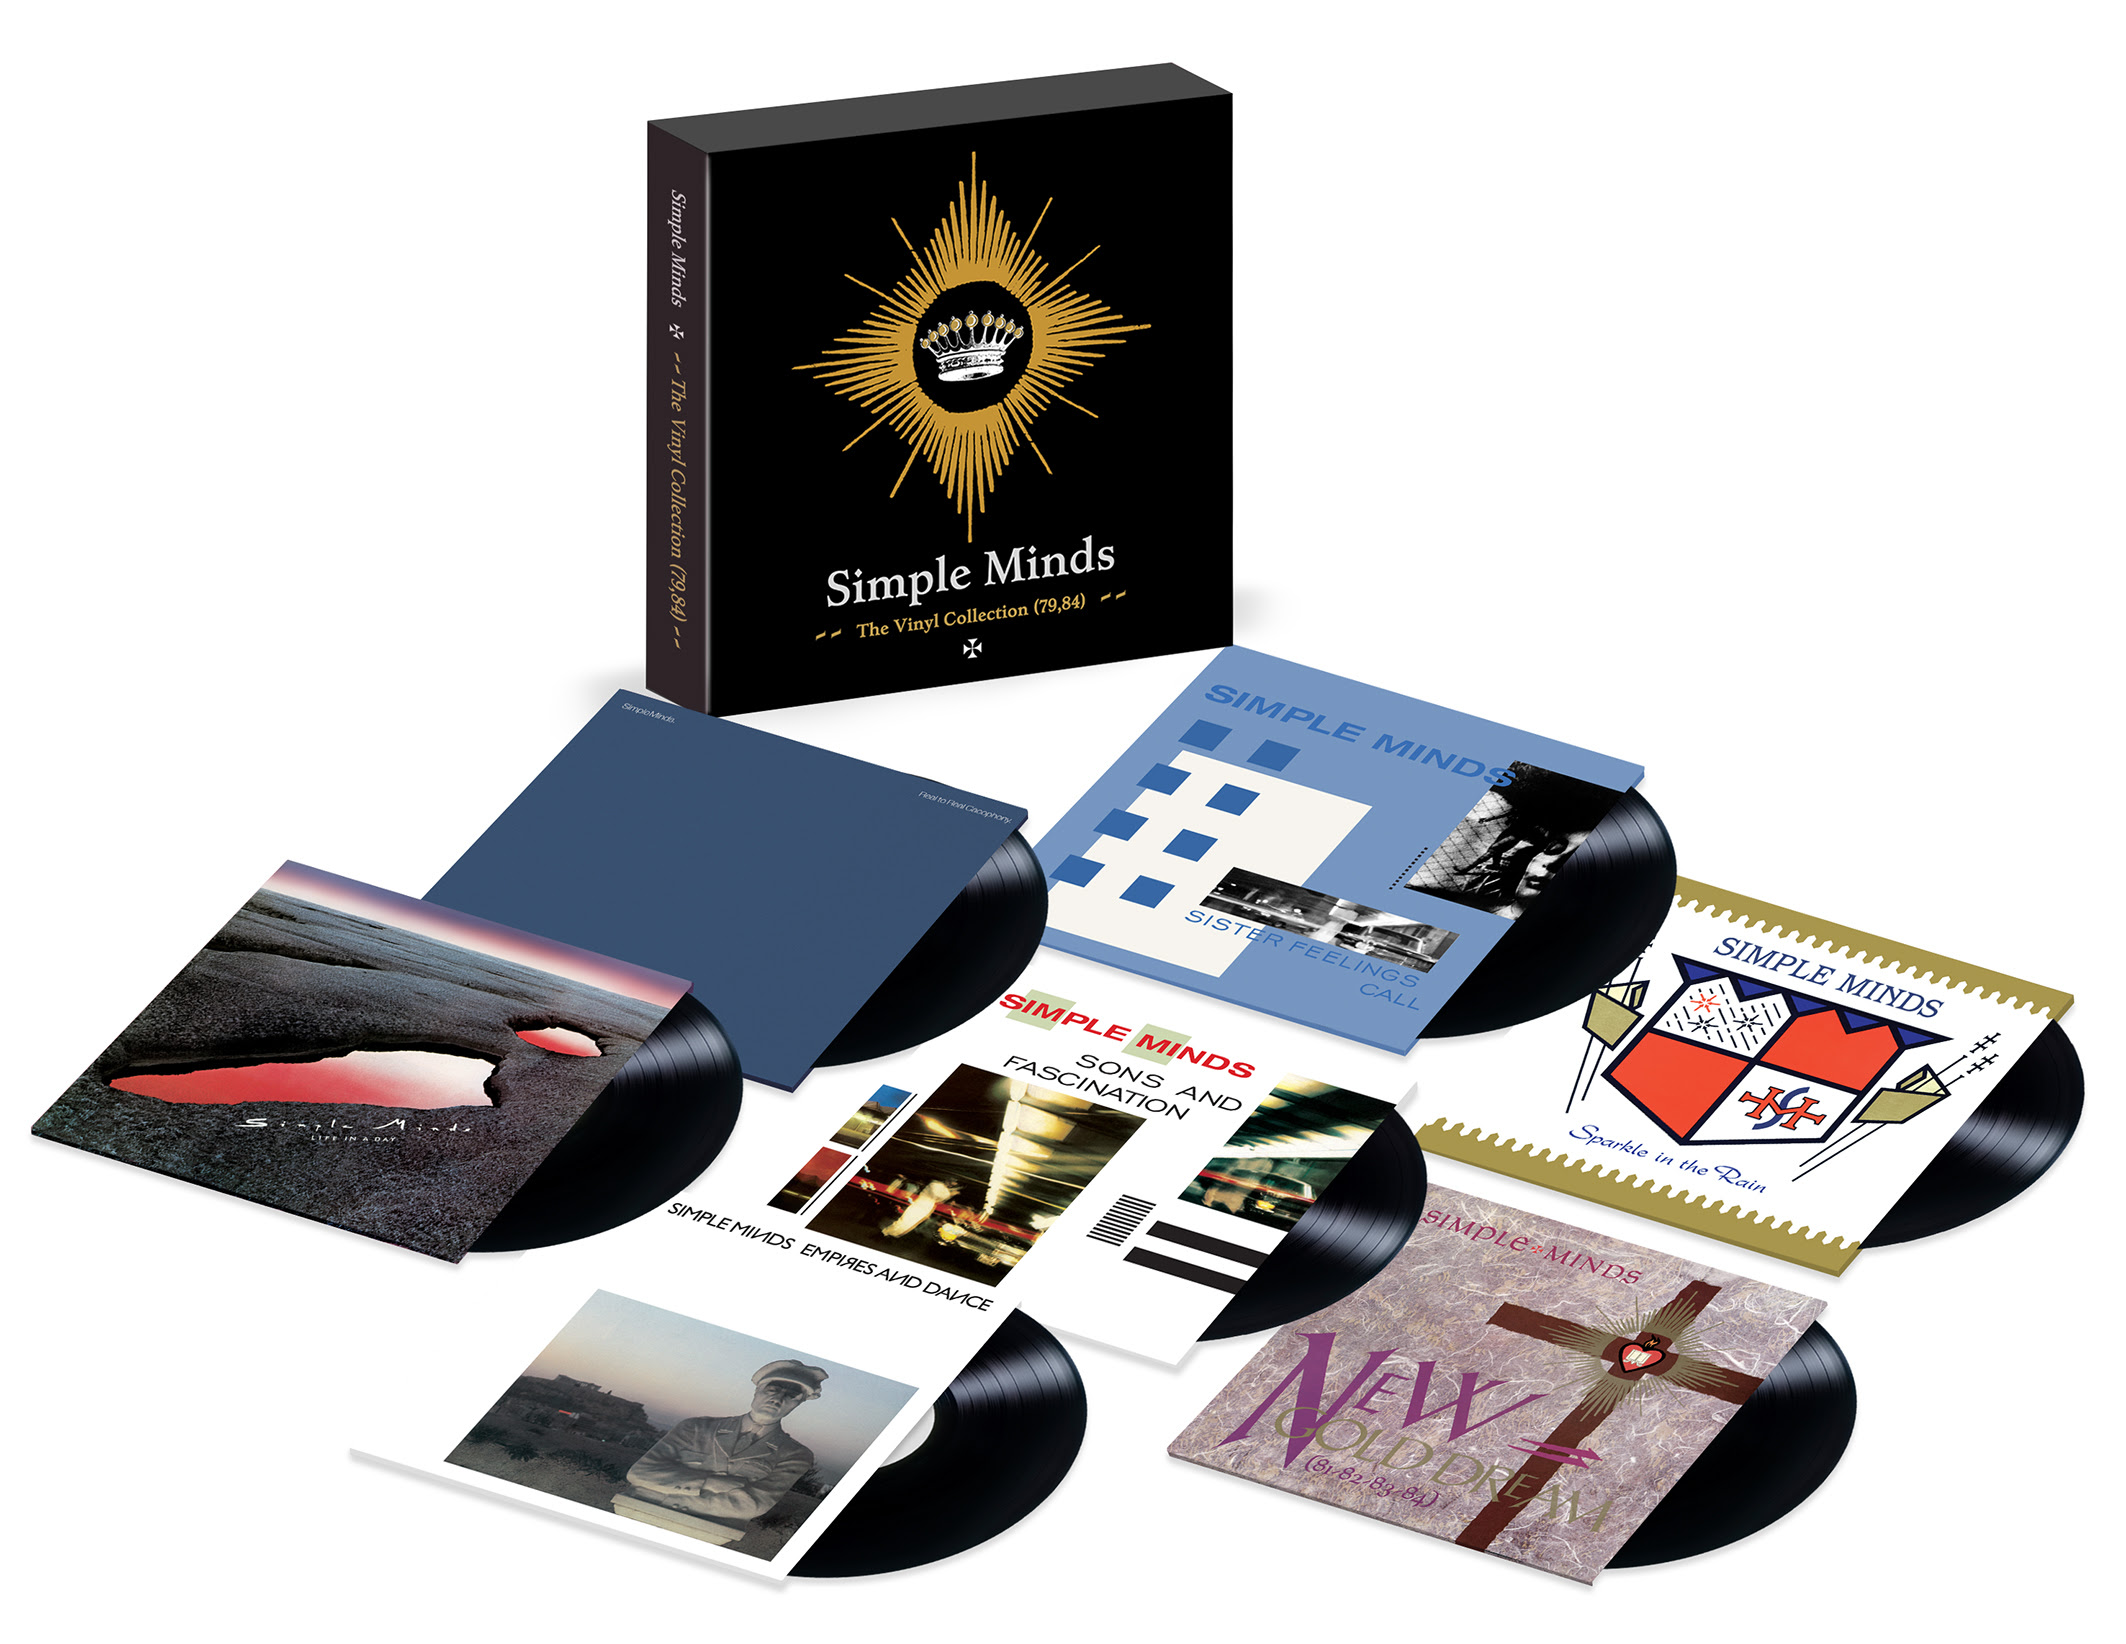 simple minds announce details of the release of the vinyl collection 79 84 gigslutzgigslutz. Black Bedroom Furniture Sets. Home Design Ideas